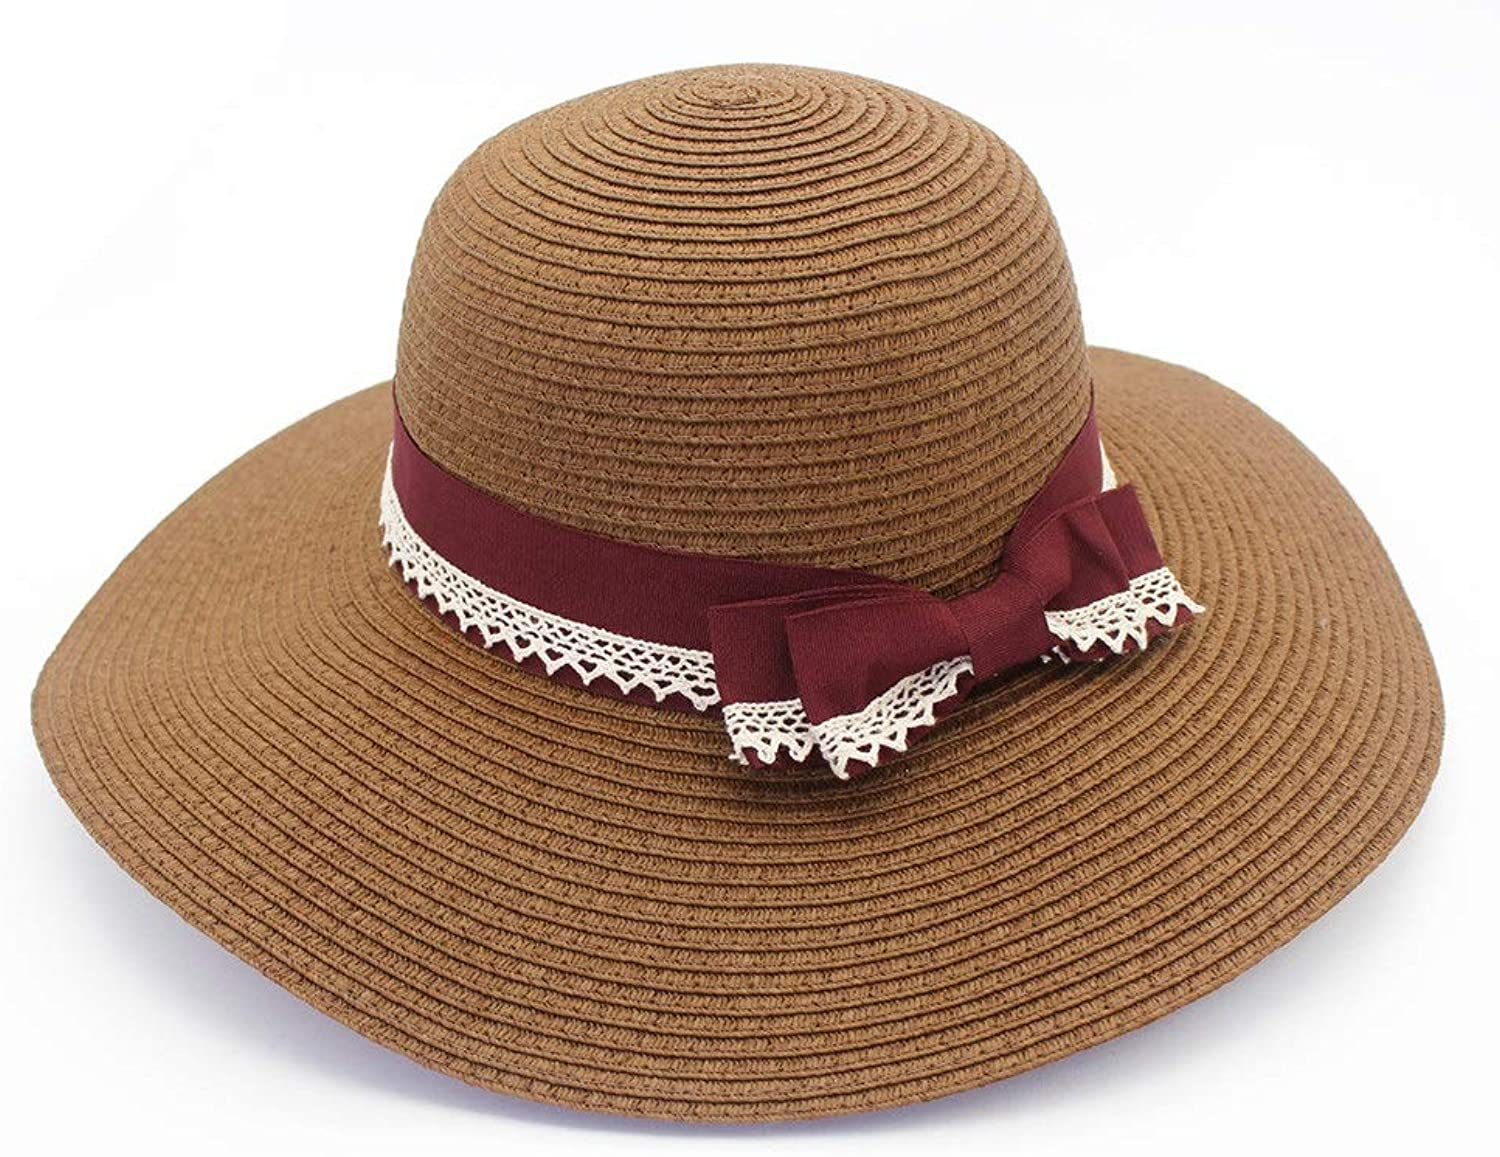 Lady Straw Hat Beach Big Fisherman with Butterfly Decoration Sunhat